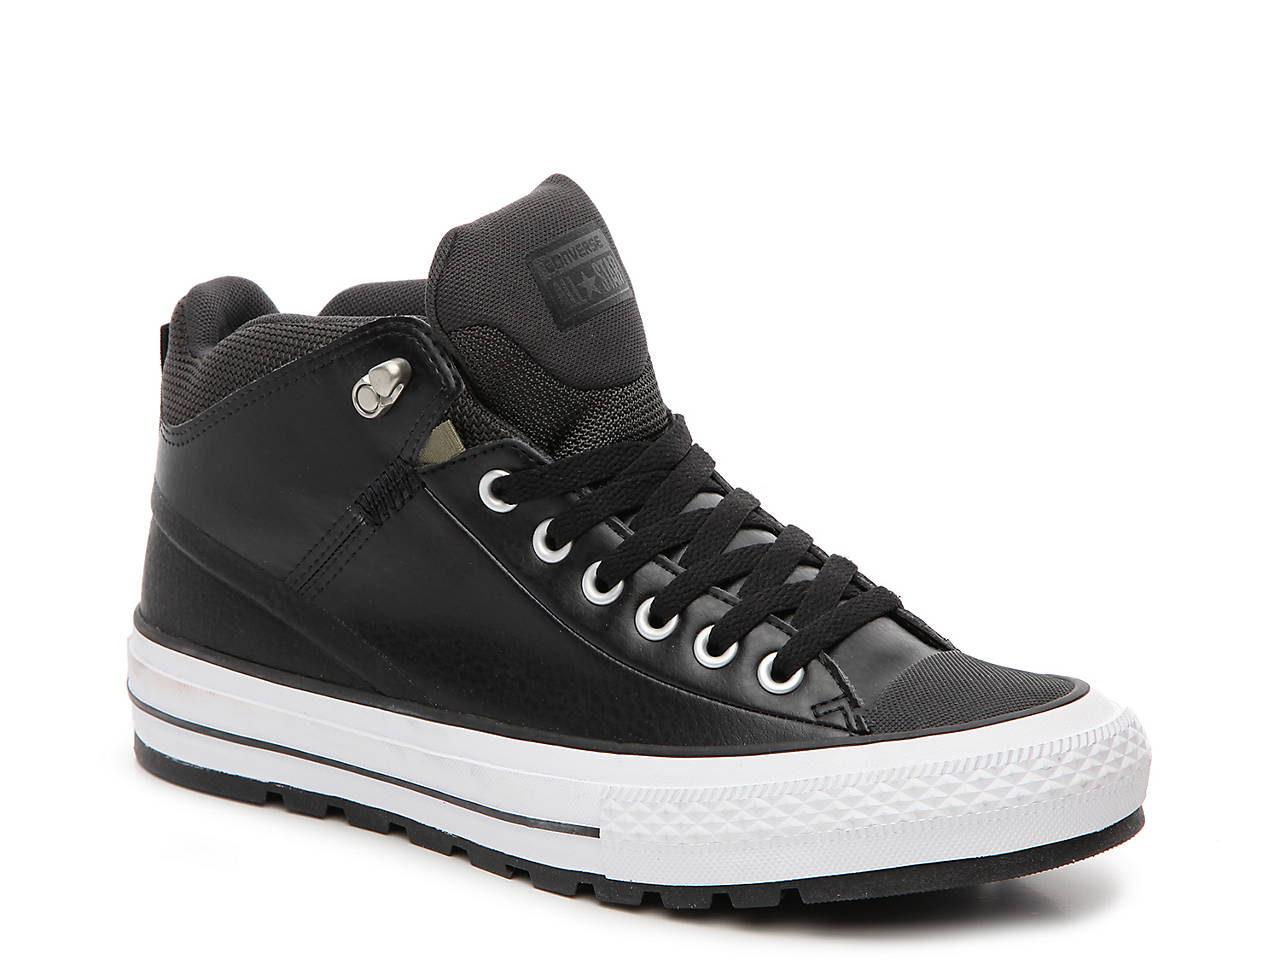 924cb9a7244 Converse Chuck Taylor All Star Hi Street High-Top Sneaker Boot ...